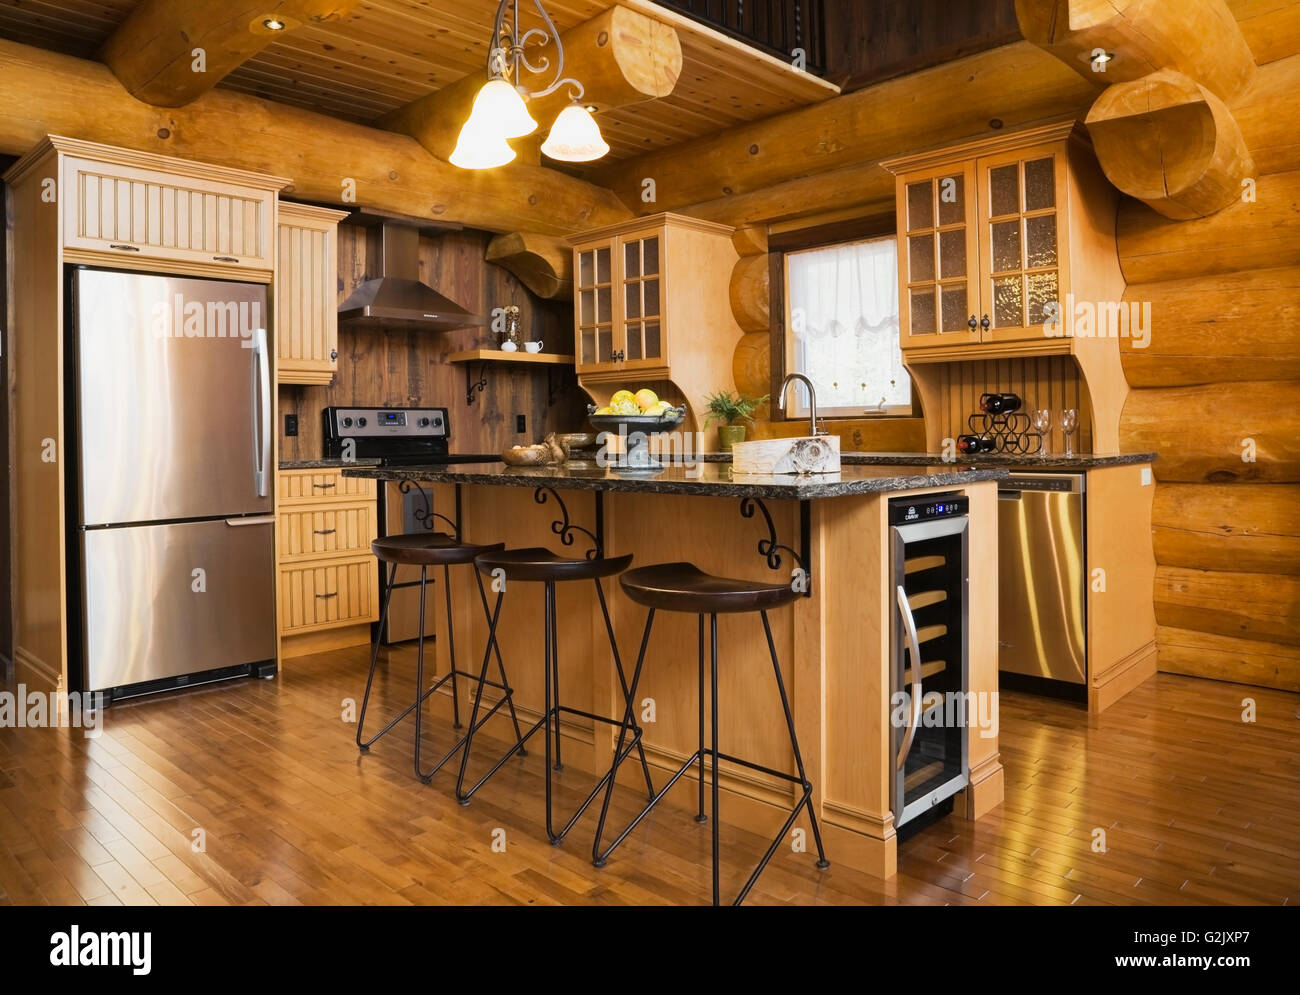 kitchen quartz countertops island bar stools inside a luxurious kitchen quartz countertops island bar stools inside a luxurious cottage style log home quebec canada this